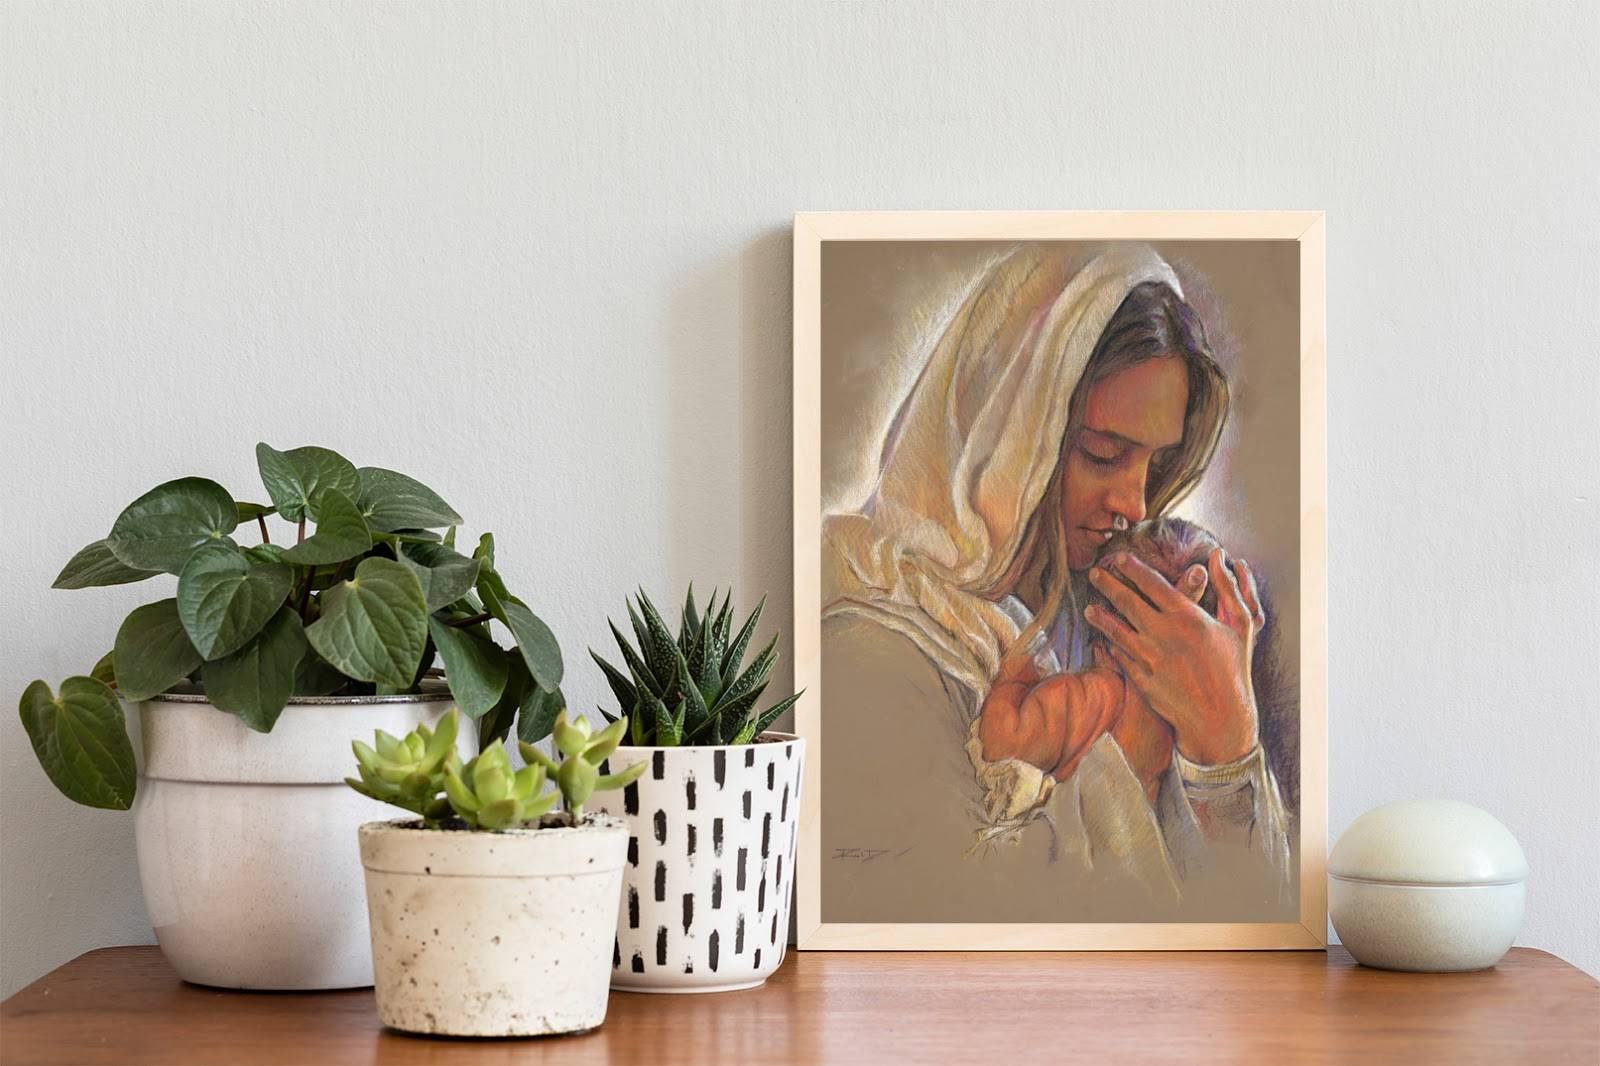 Small art painting of a mother holding her infant.  The picture has been placed on a small end table among various plants and decorative items.